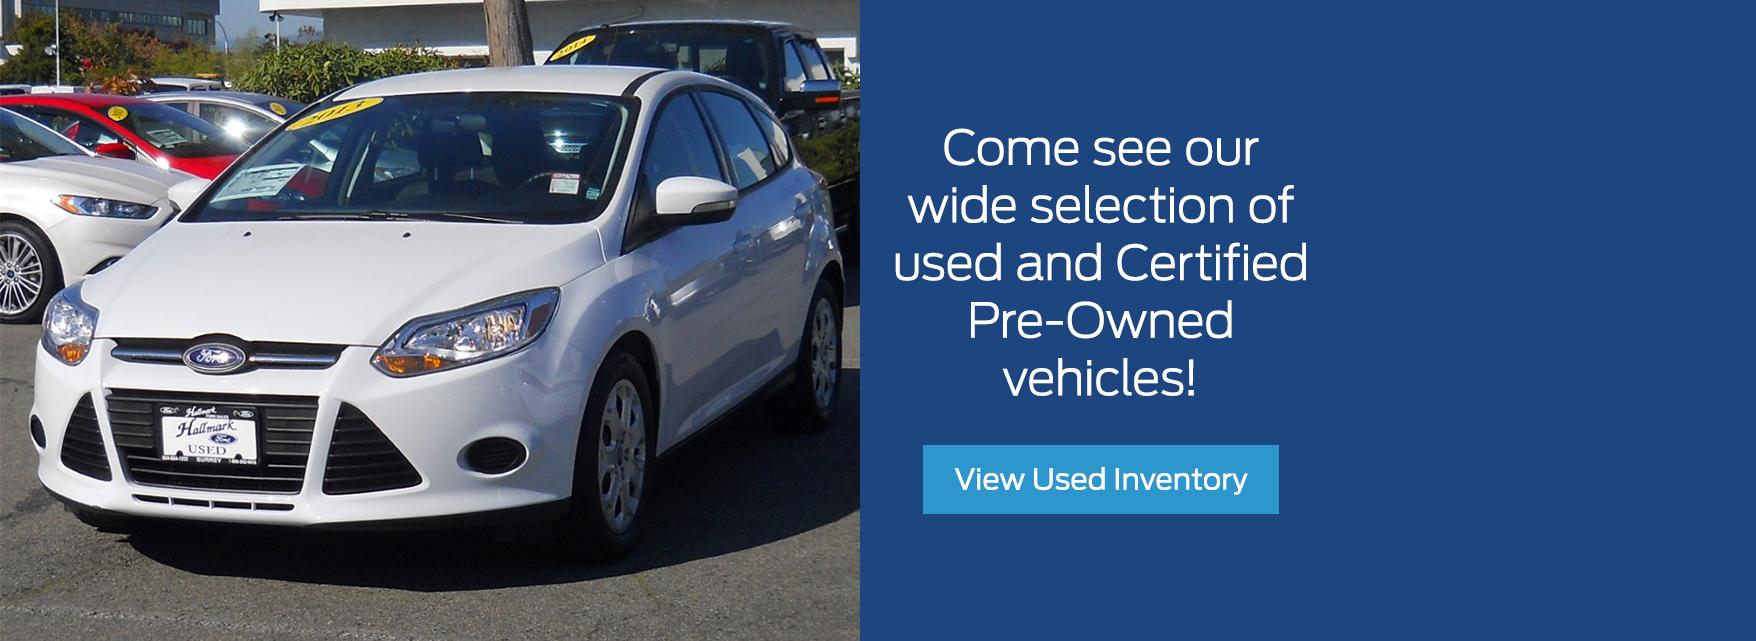 Browse Used Inventory at Hallmark Ford in Surrey BC